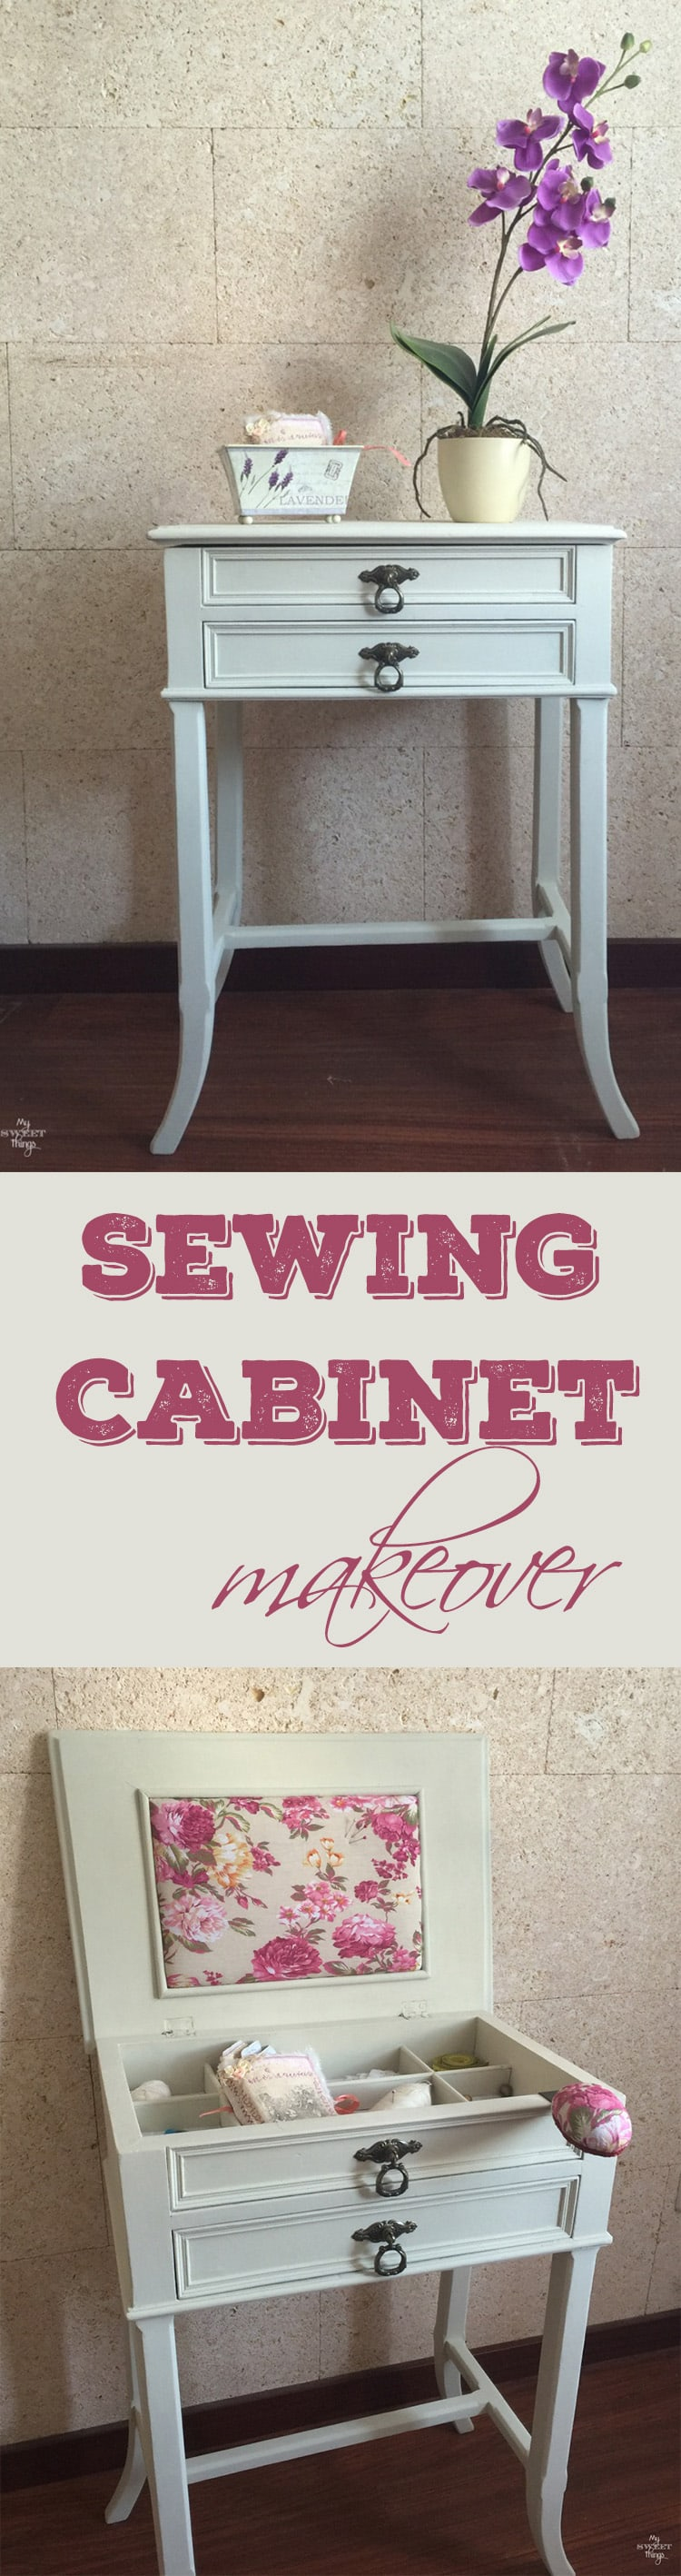 Sewing cabinet makeover from an old sewing cabinet with paint and some pretty fabric